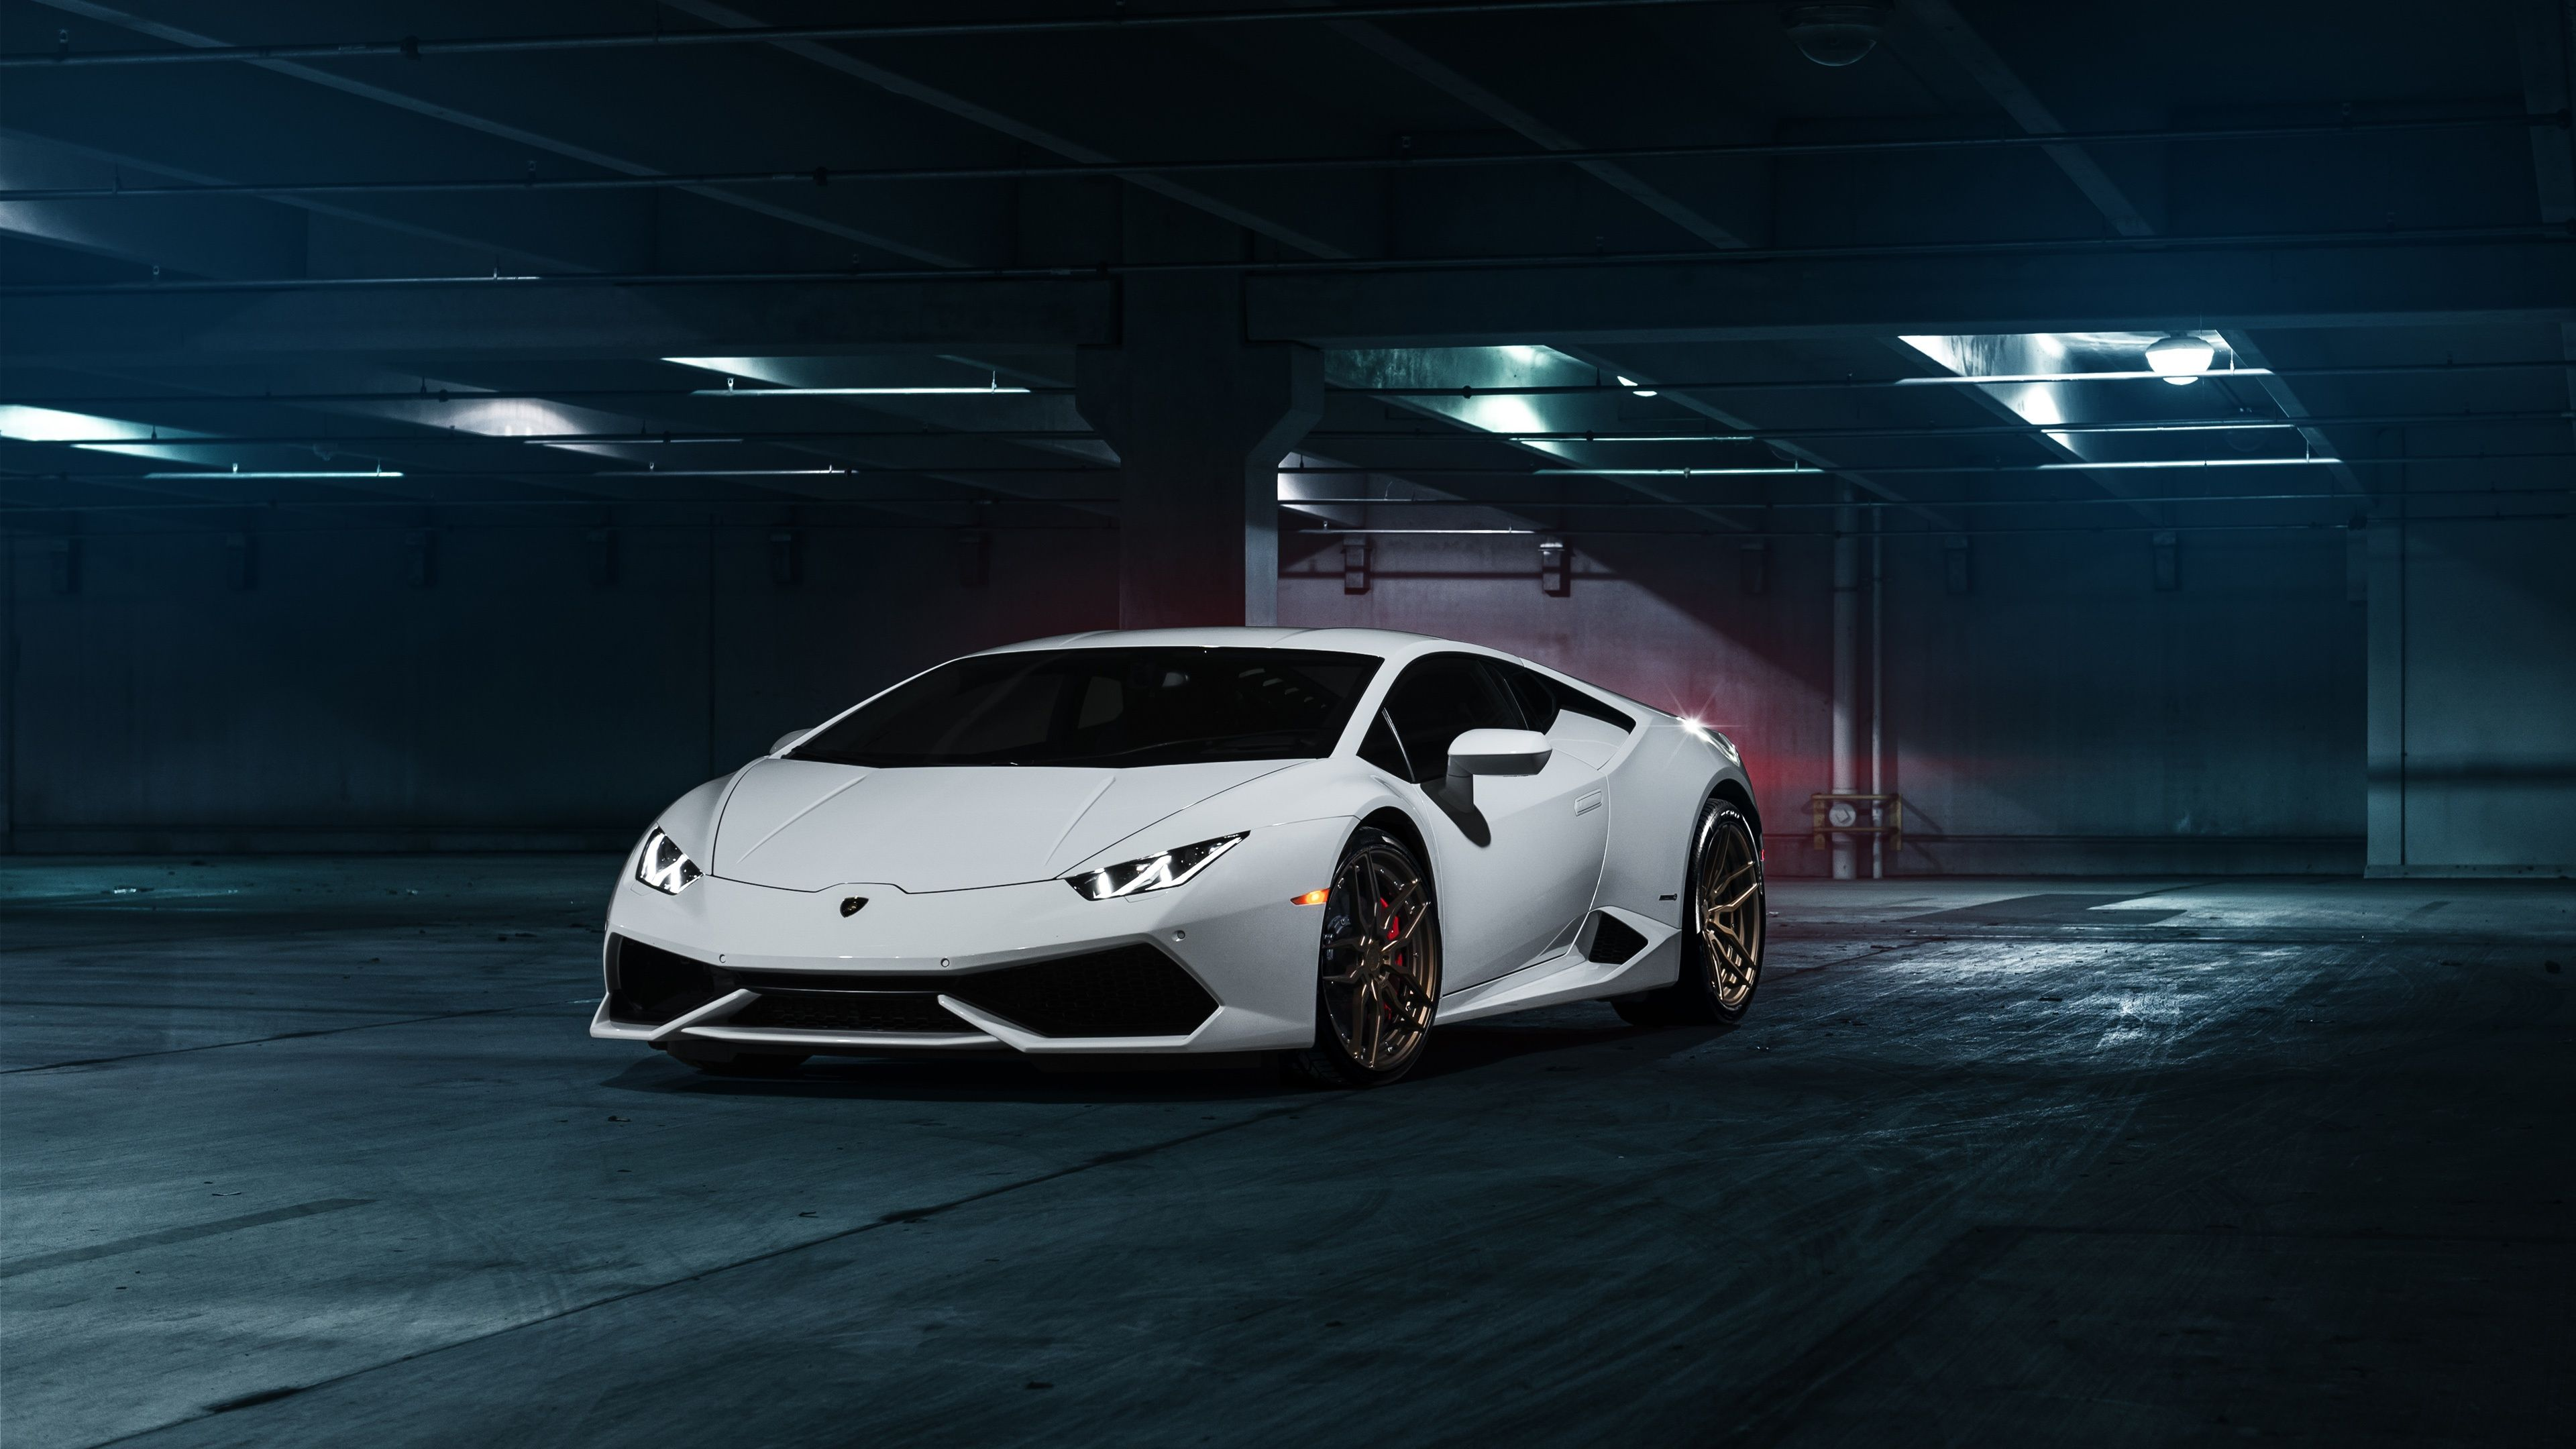 Supercar Wallpapers Full Hd Free Download White Lamborghini Supercars Wallpaper Lamborghini